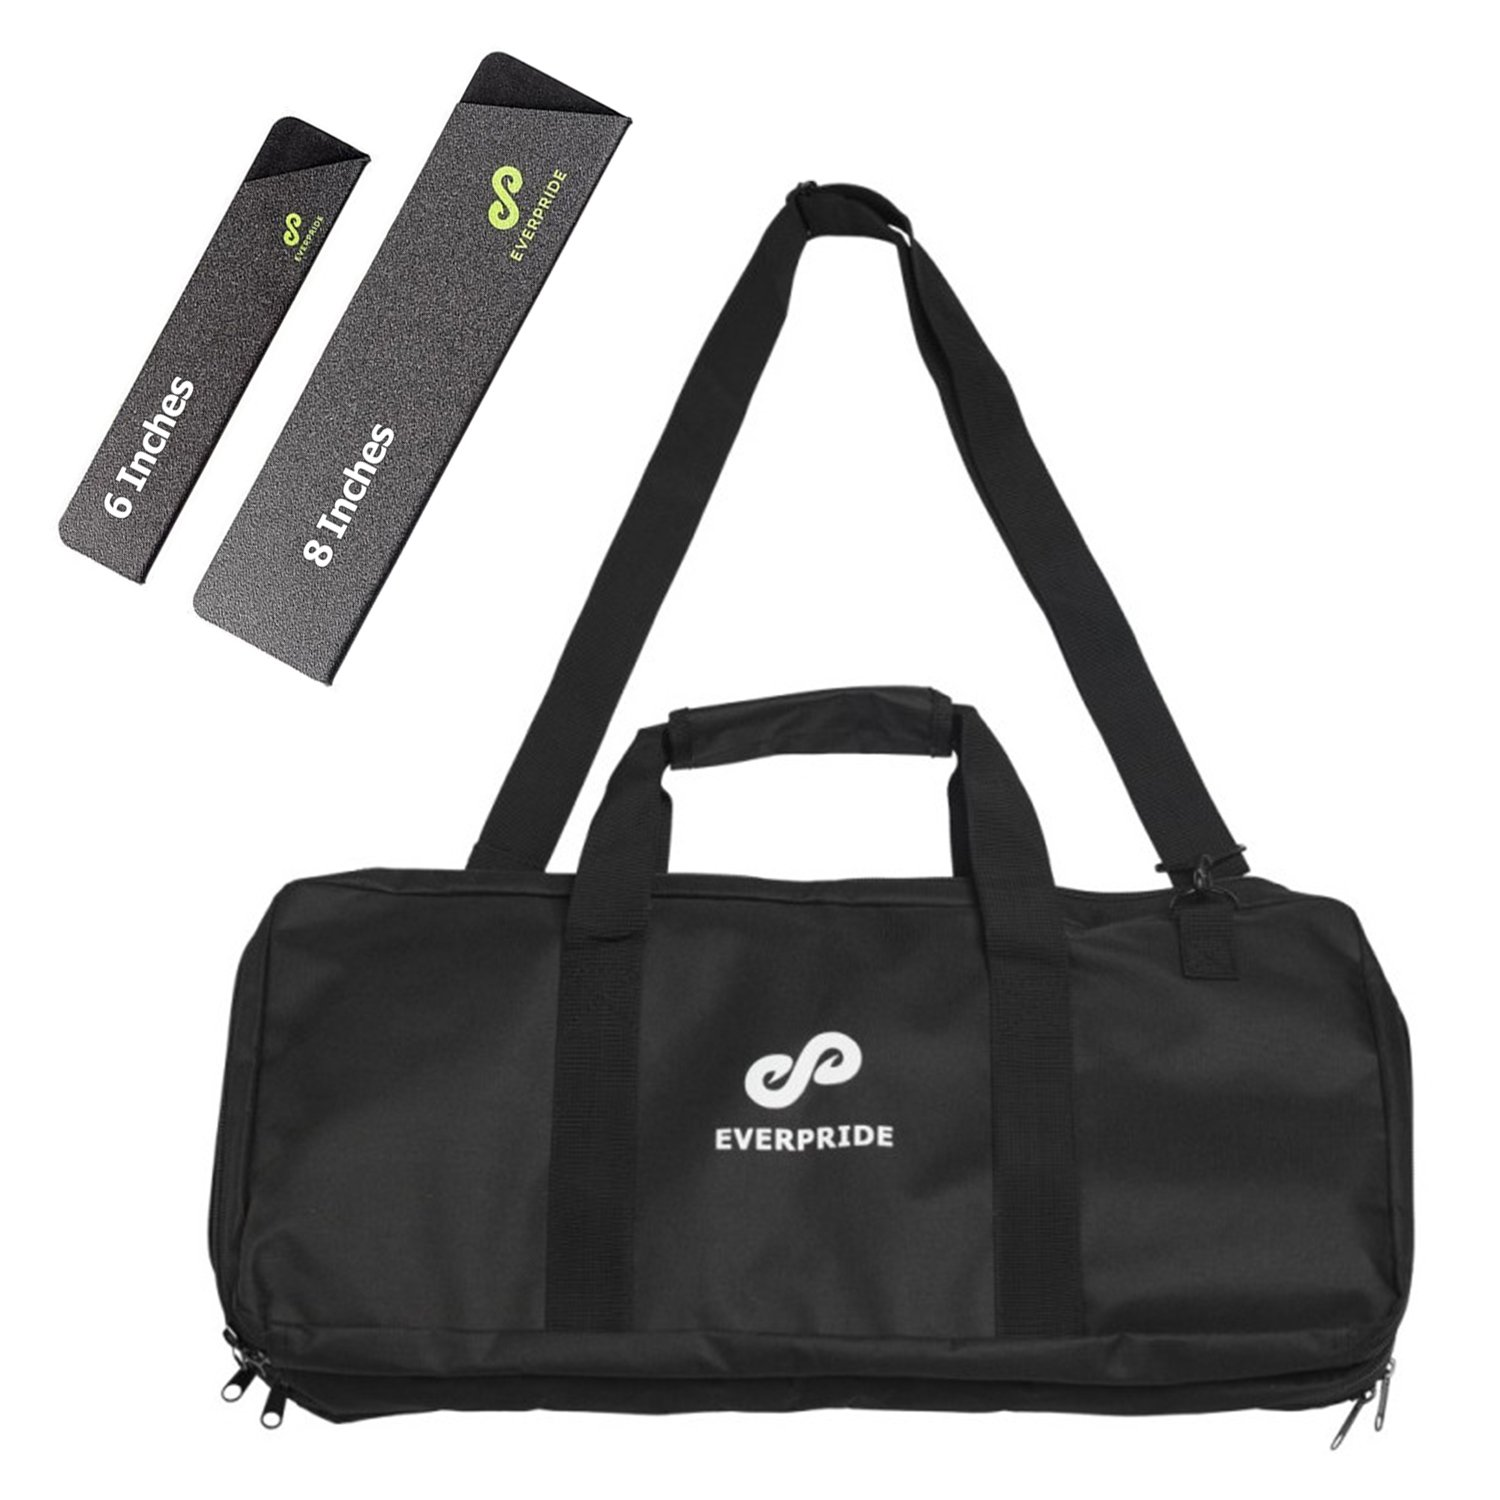 Knife Bag for Chefs w/Shoulder Strap by EVERPRIDE | Premium Culinary Knife Bag | Includes 2 Knife Guards | Durable Kitchen Utensils Holder | Knives Protector w/20 Pockets & 3 Zipper Compartments